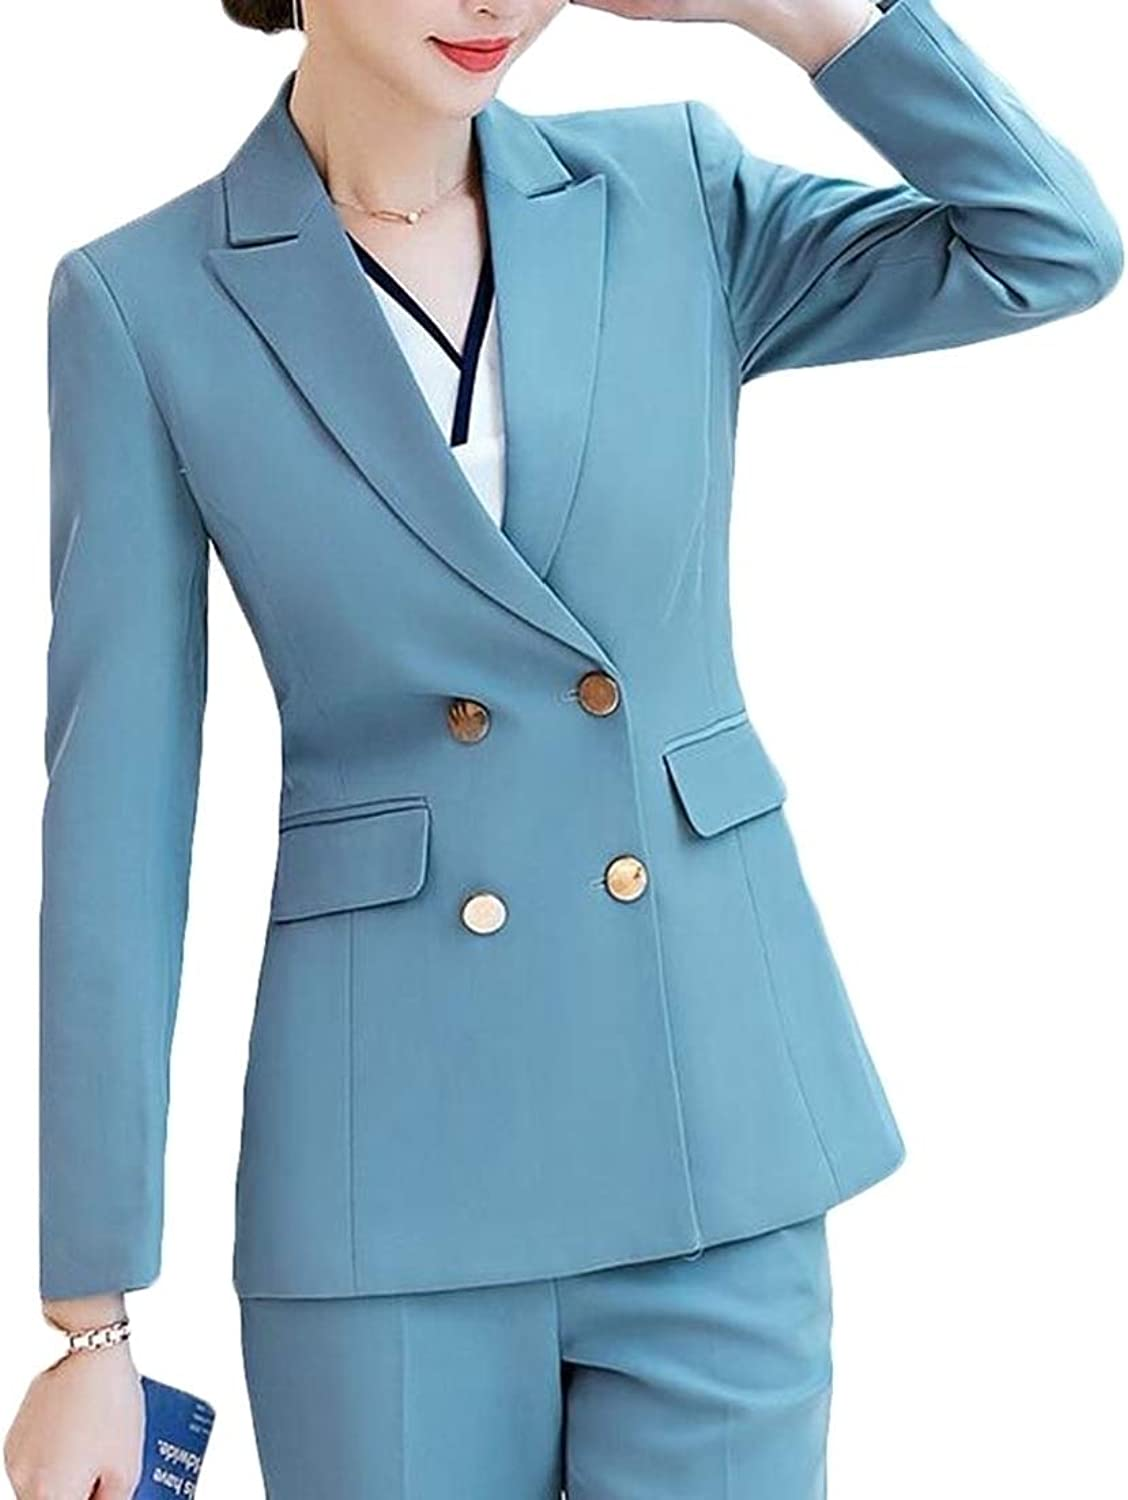 BLTR Women Blazer and Pants Office Work Solid Lapel 2 PCS Suits Sets Outfits